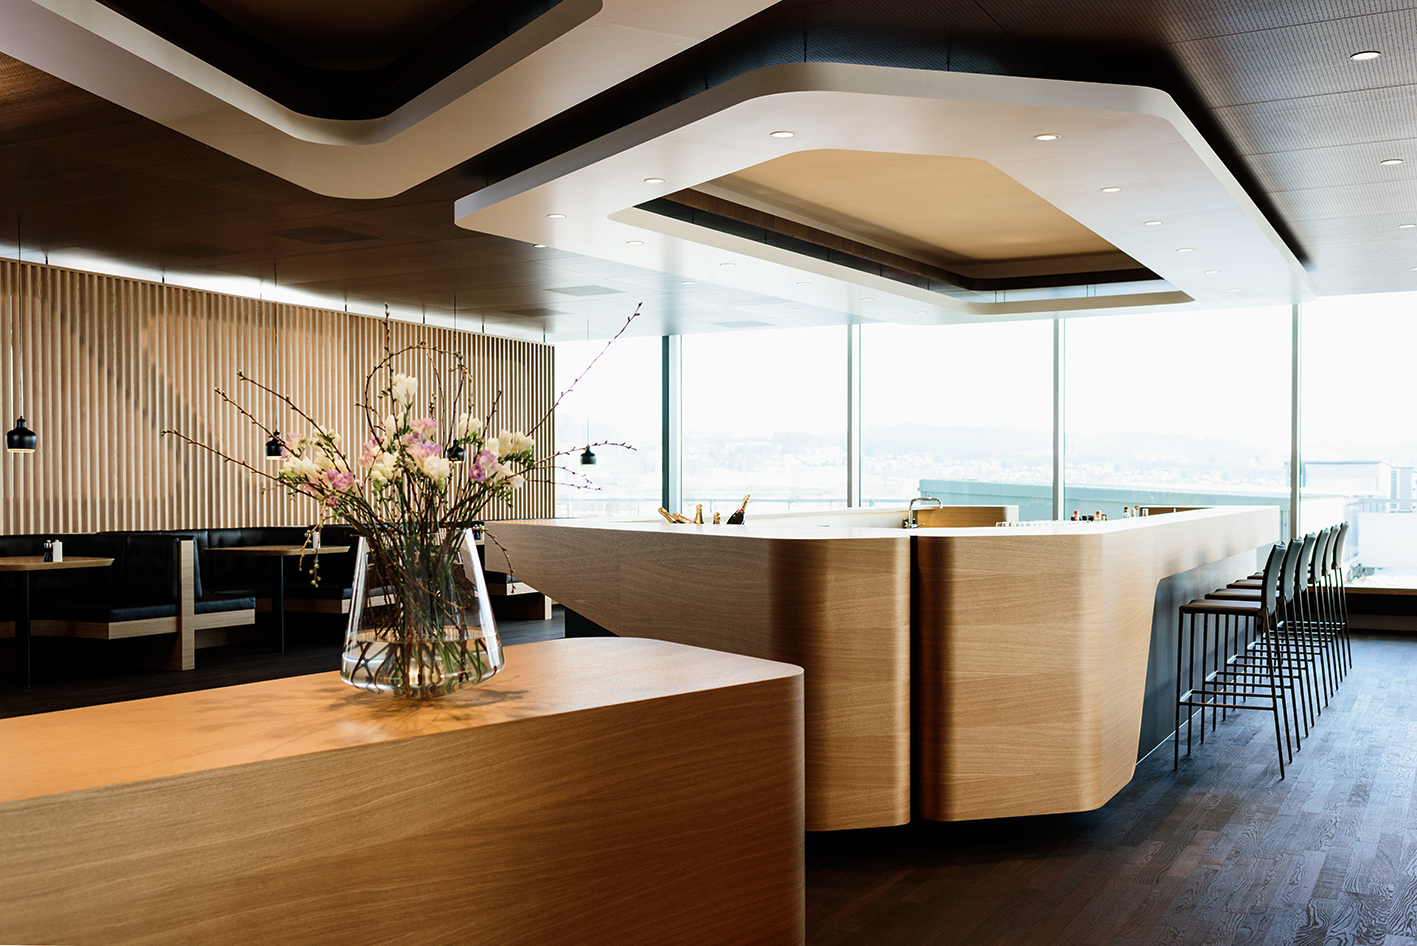 SWISS FIRST LOUNG Zurich - ©SWISS